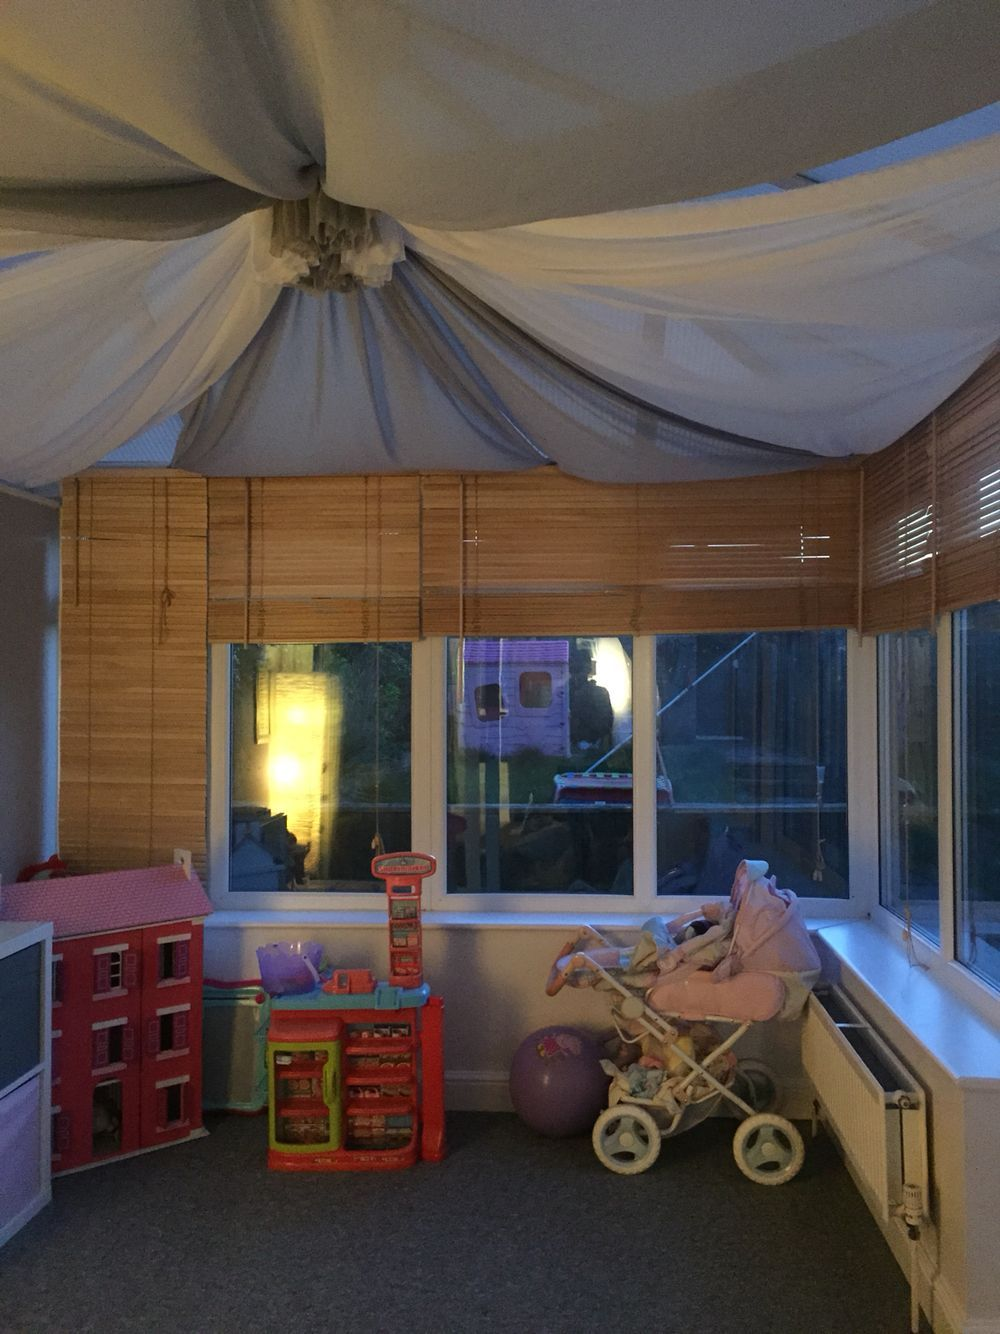 Astounding Tricks Plaid Carseat Canopy Canopy Diy Ribbons Canopy Architecture Dreams Canopy Forest Sleep Retractab House Canopy Patio Canopy Conservatory Roof